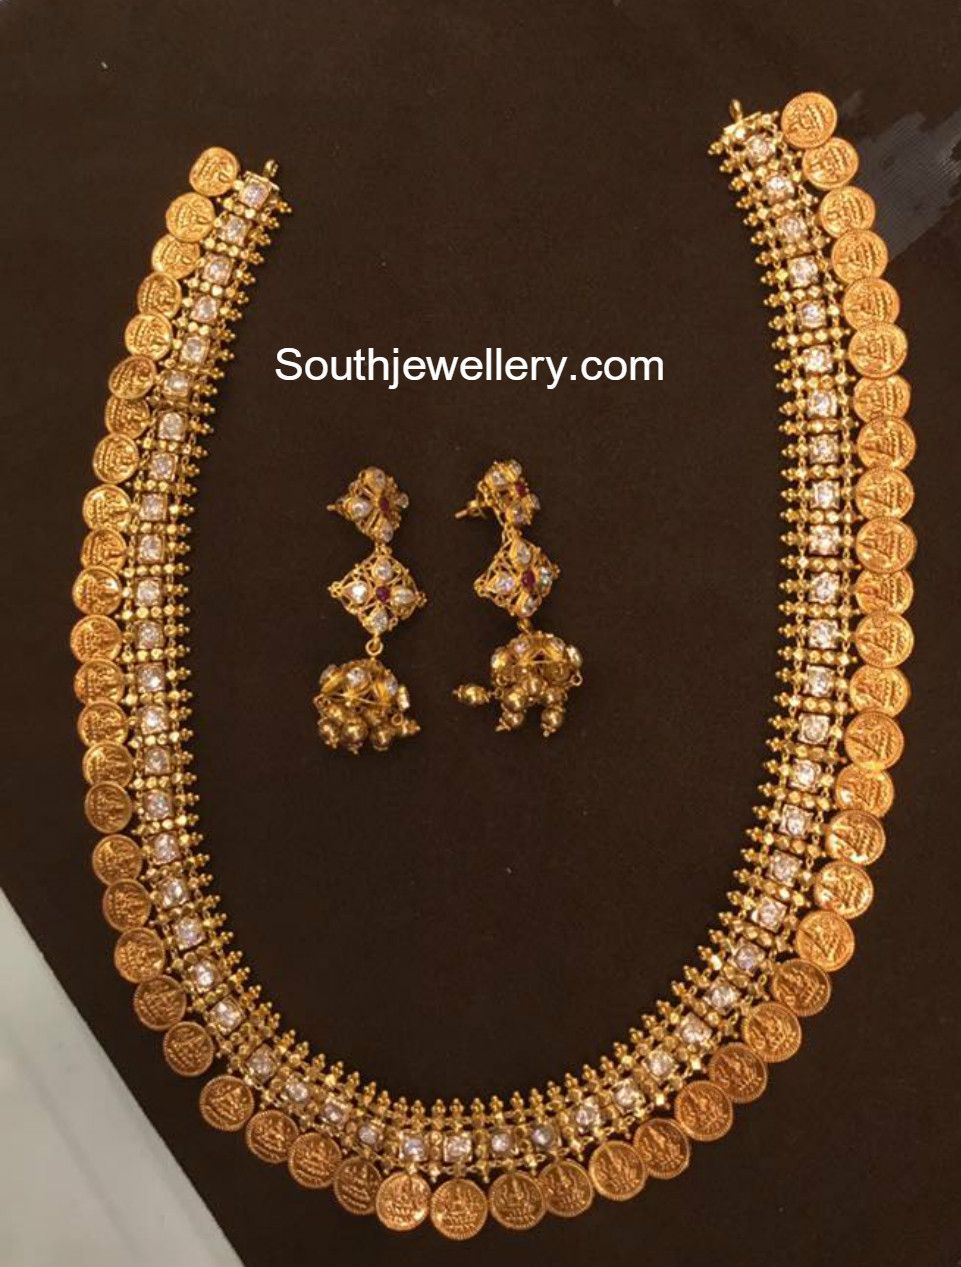 100 Grams Antique Gold Kasu Haram Gold Jewelry Fashion 22 Carat Gold Jewellery Bridal Jewelry Collection